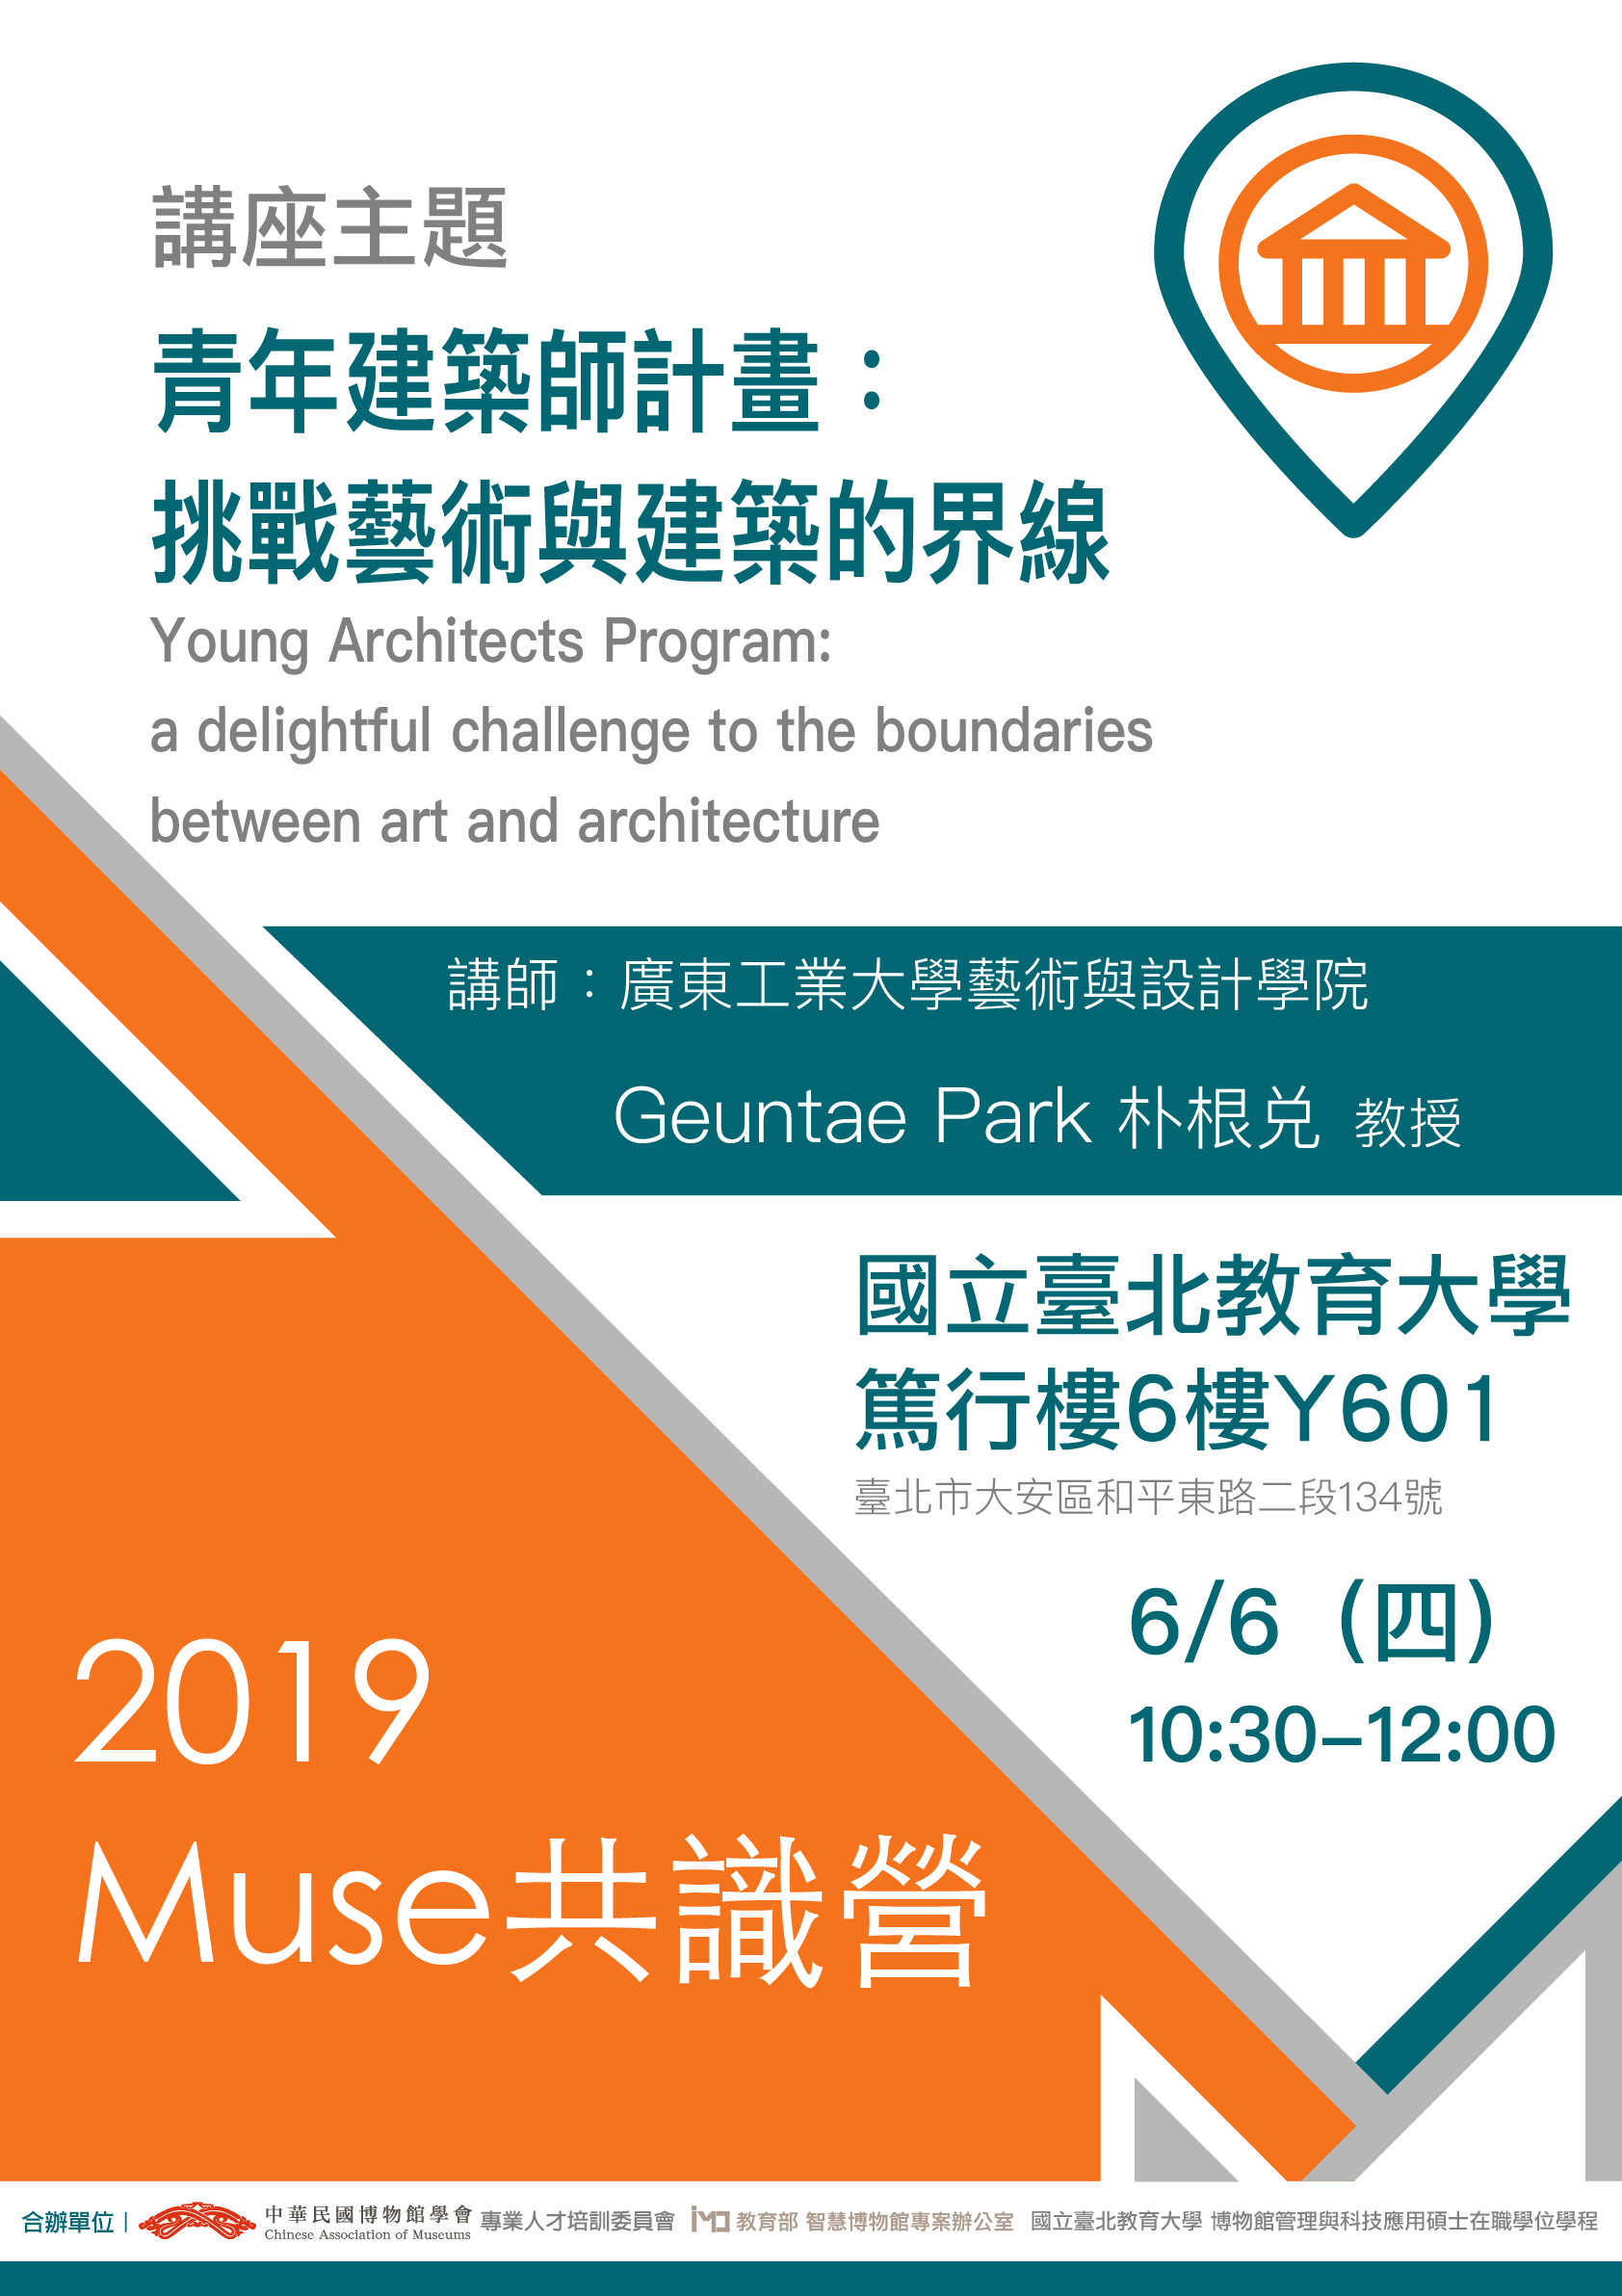 中華民國博物館學會:2019/06/06【2019 Muse共識營-Young Architects Program: a delightful challenge to the boundaries between art and architecture(青年建築師計畫:挑戰藝術與建築的界線)& 2019北師博物講堂-Recent trends of museum architecture(博物館建築的趨勢)】